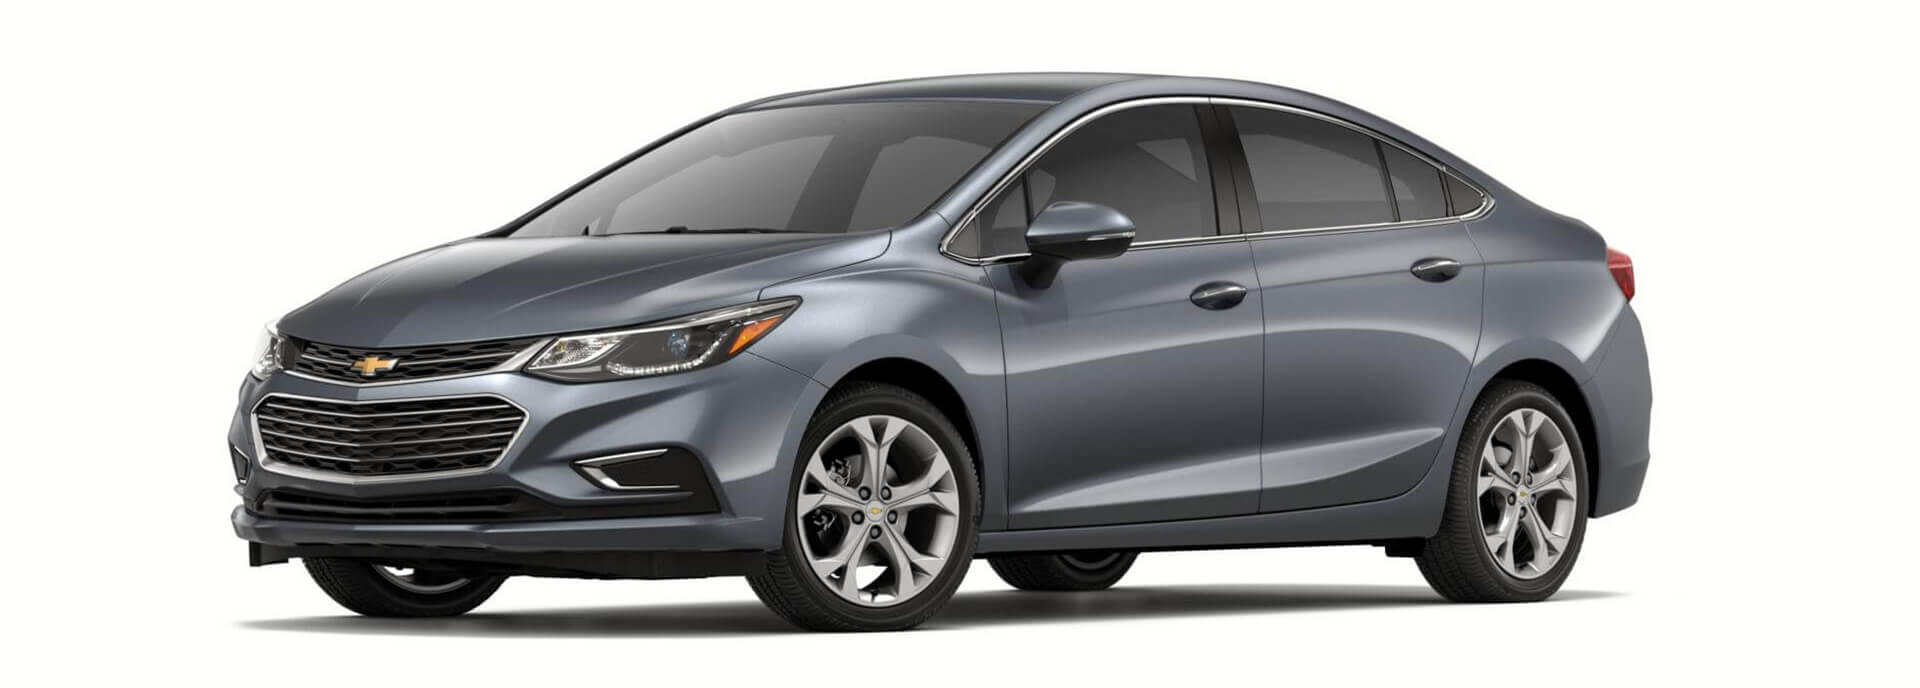 2018 Chevrolet Cruze Info | Chevrolet Buick GMC of Fairbanks